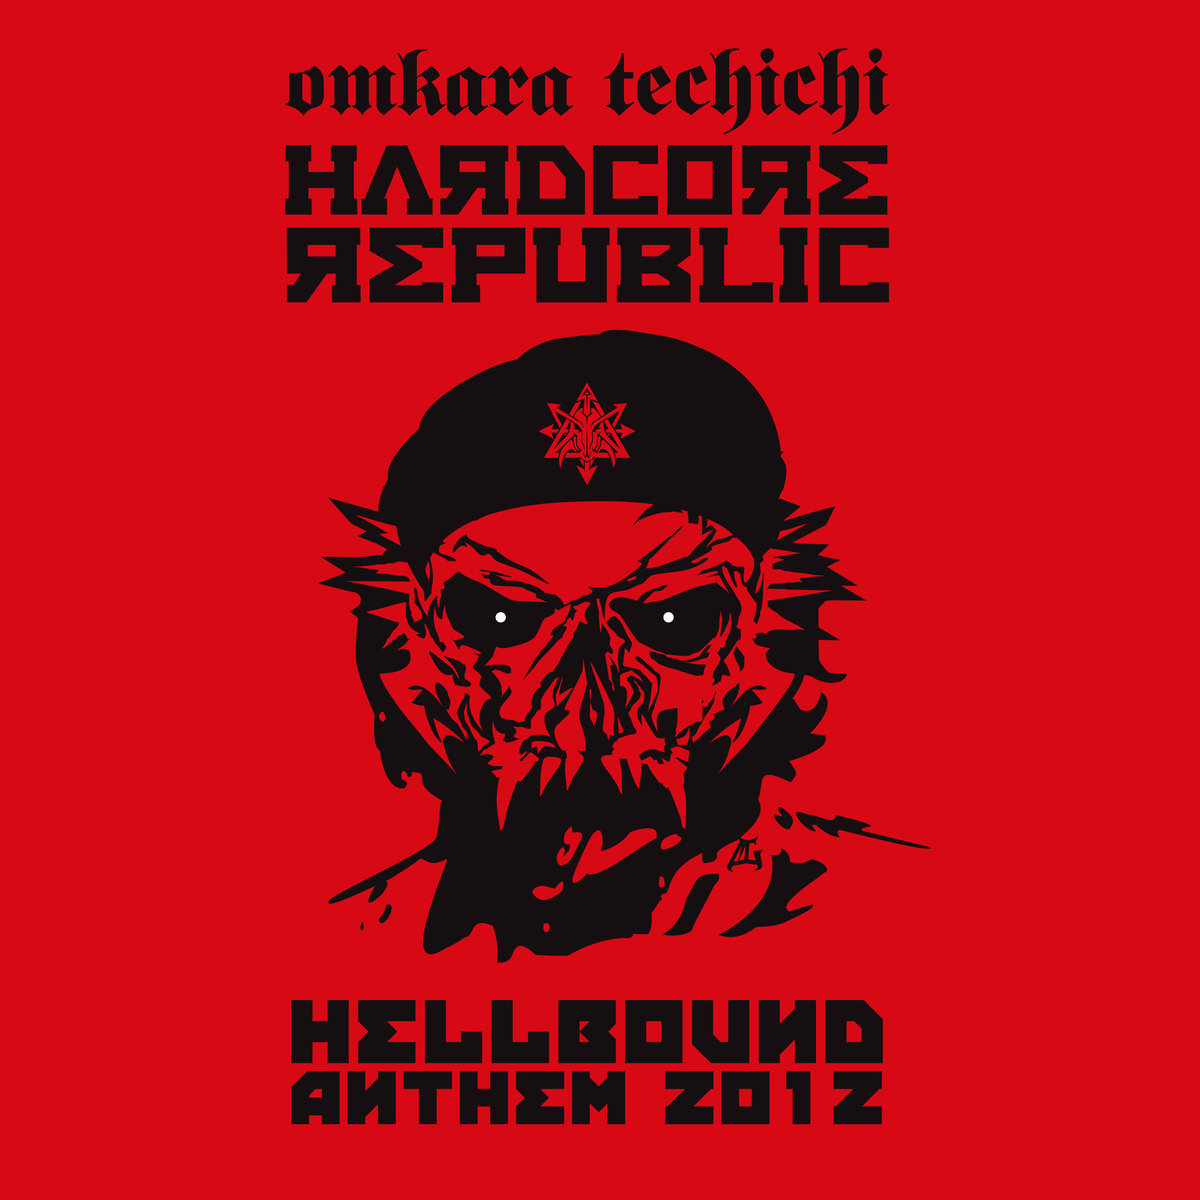 Omkara Techichi - Hardcore Republic (Hellbound Anthem 2012) @ 'Hardcore Republic (Hellbound Anthem 2012)' album (electronic, gabber)